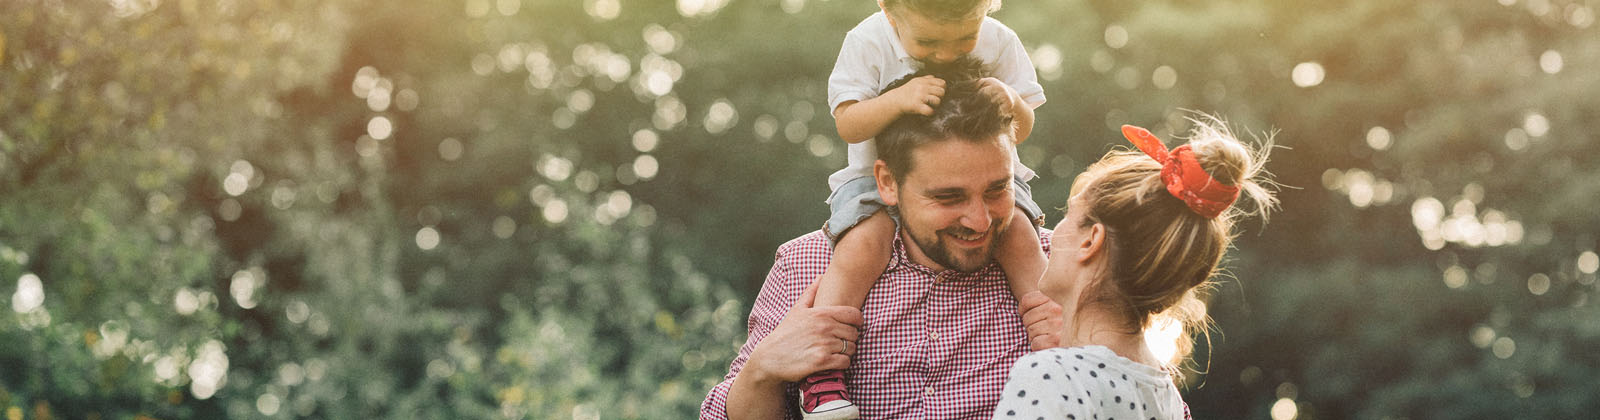 Family outside